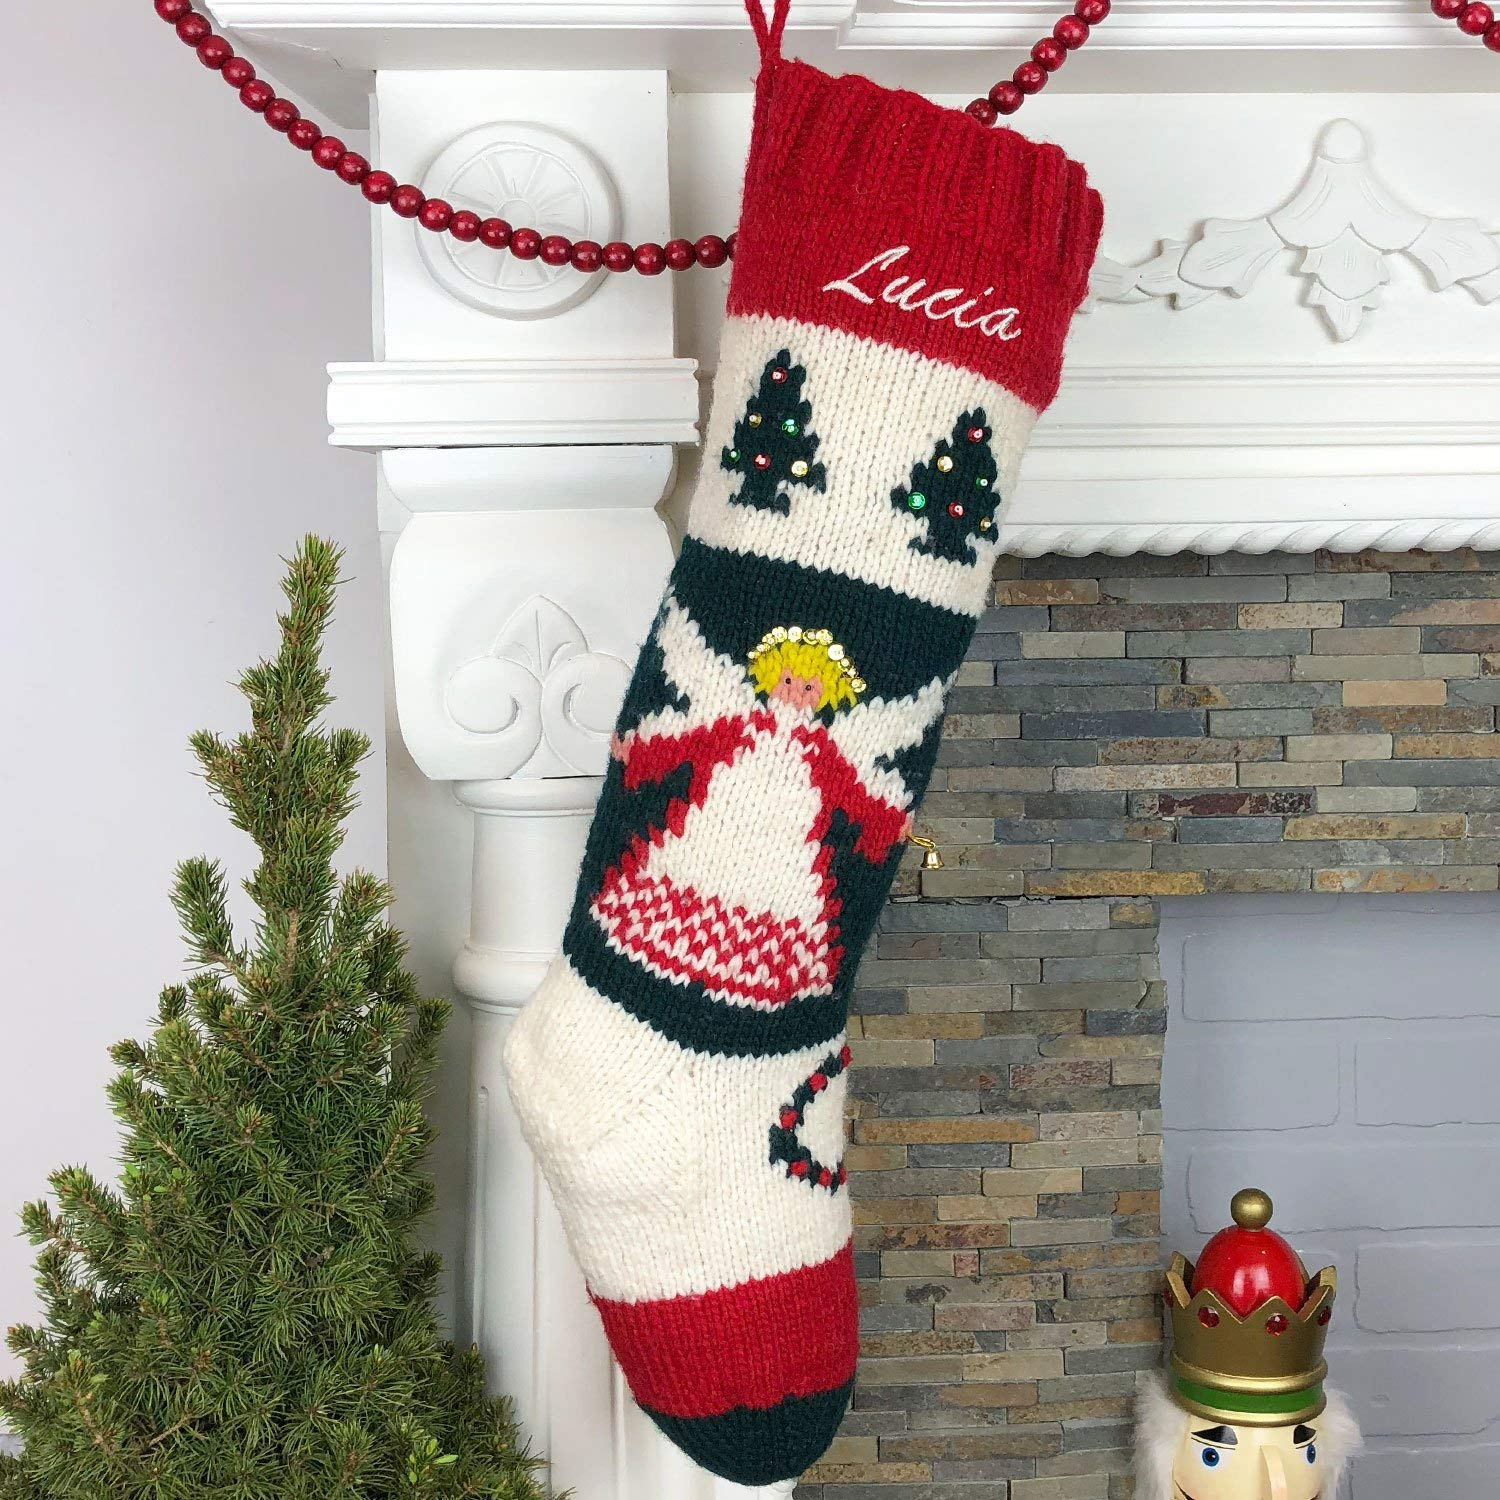 Christmas Stocking Personalized.Christmas Stocking Personalized Hand Knit Vintage Angel Stocking